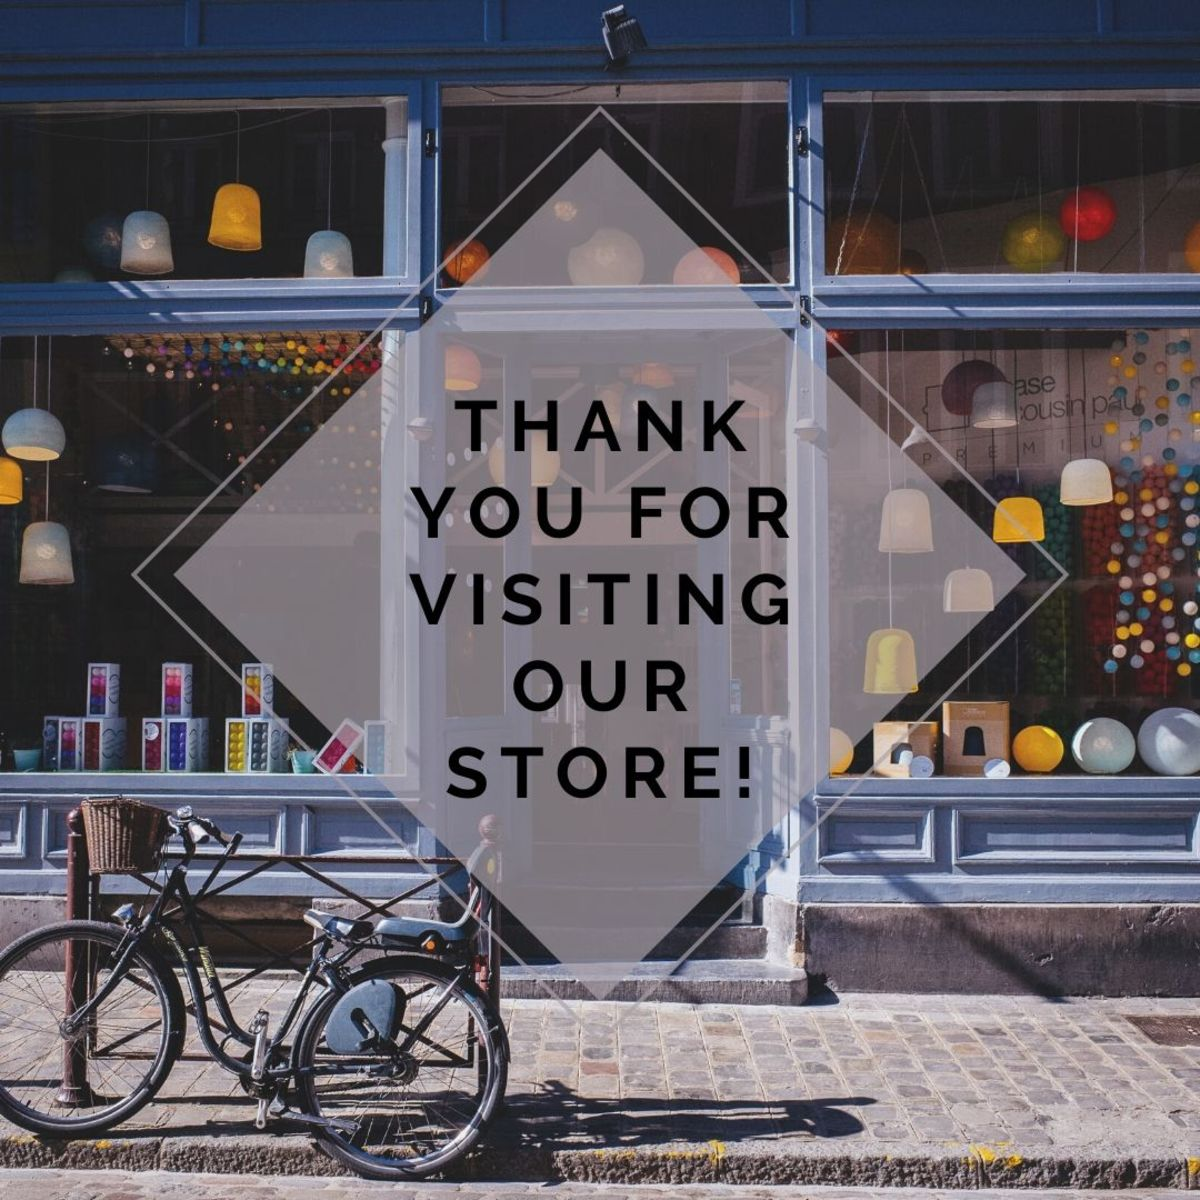 Remember to thank your customers for their patronage.